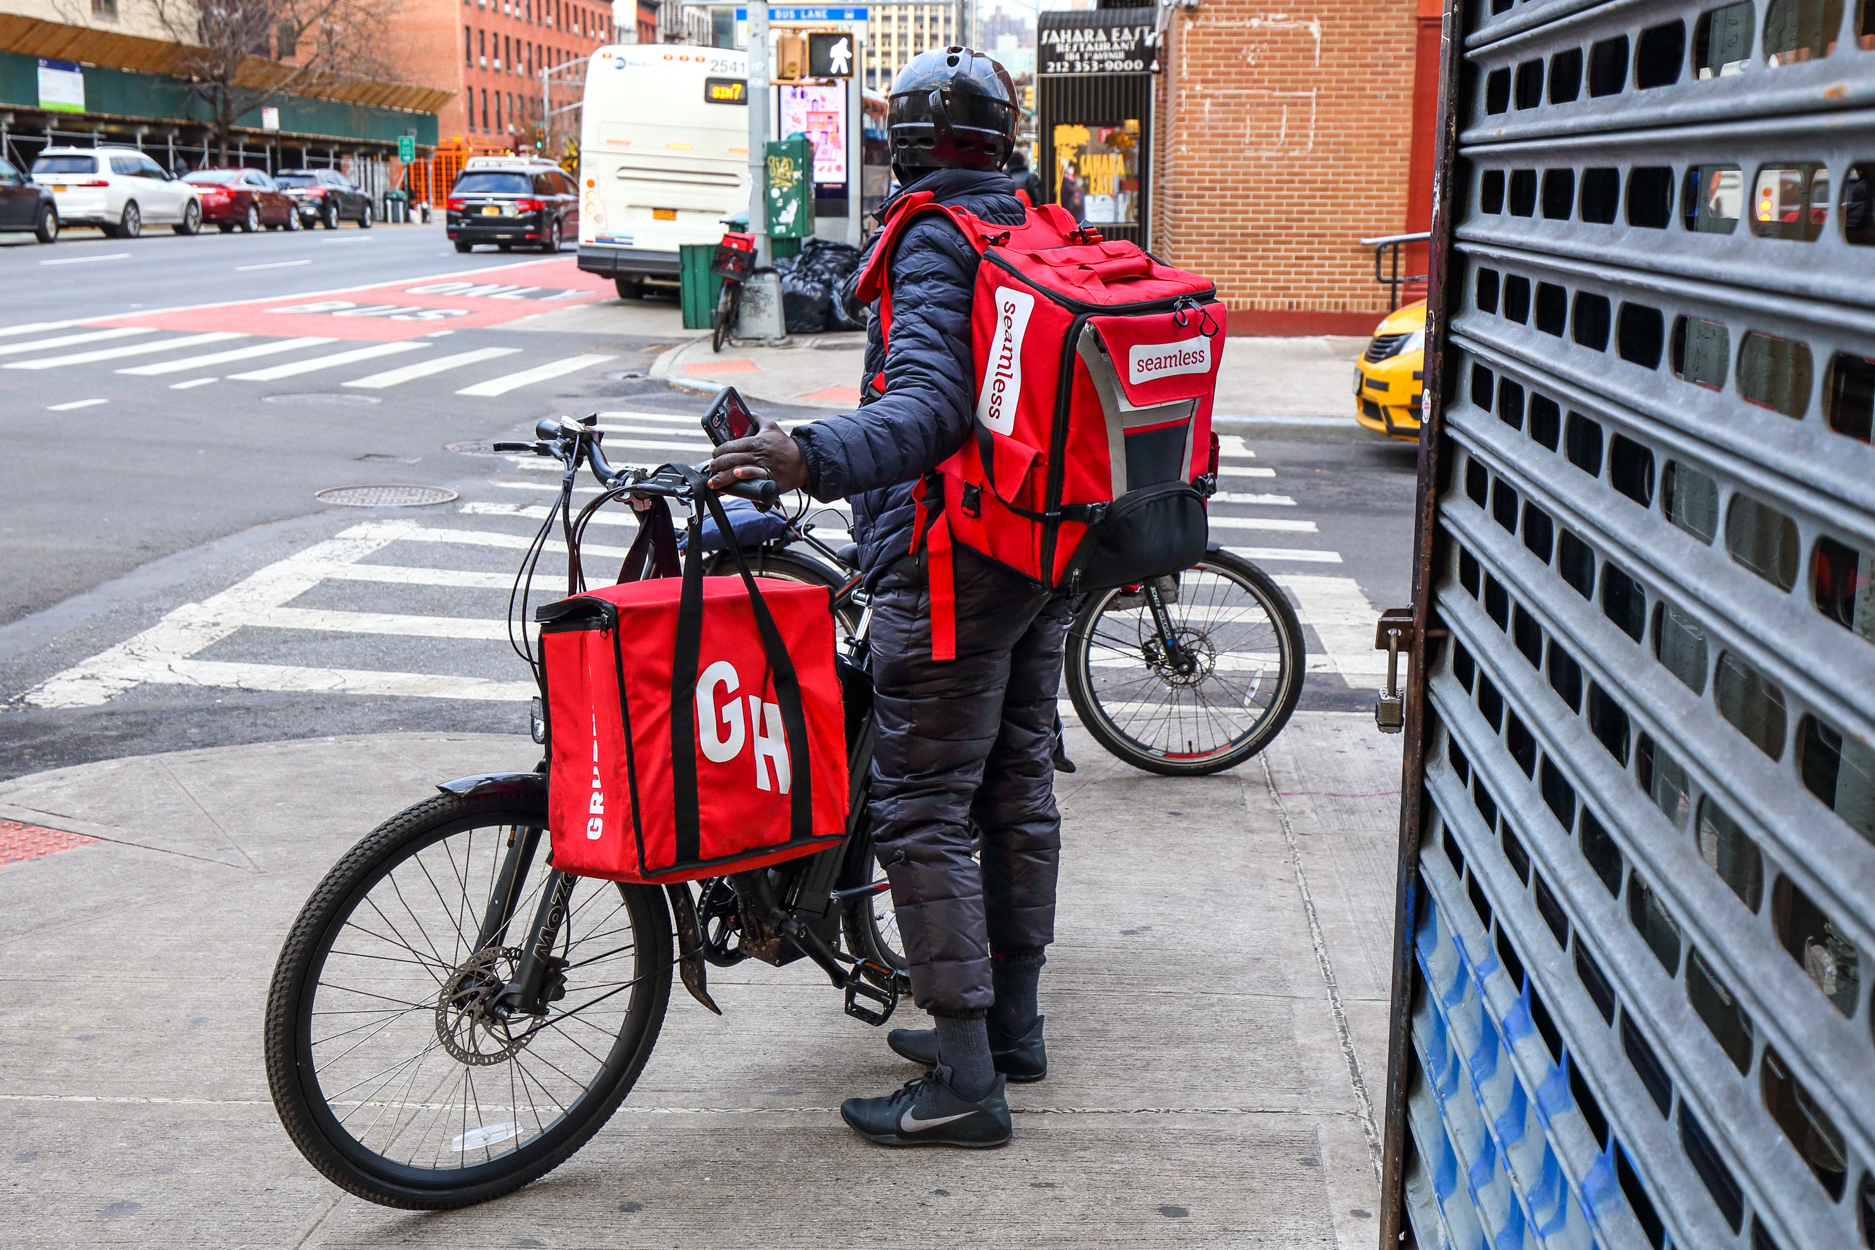 Delivery Services Need To Change Policies